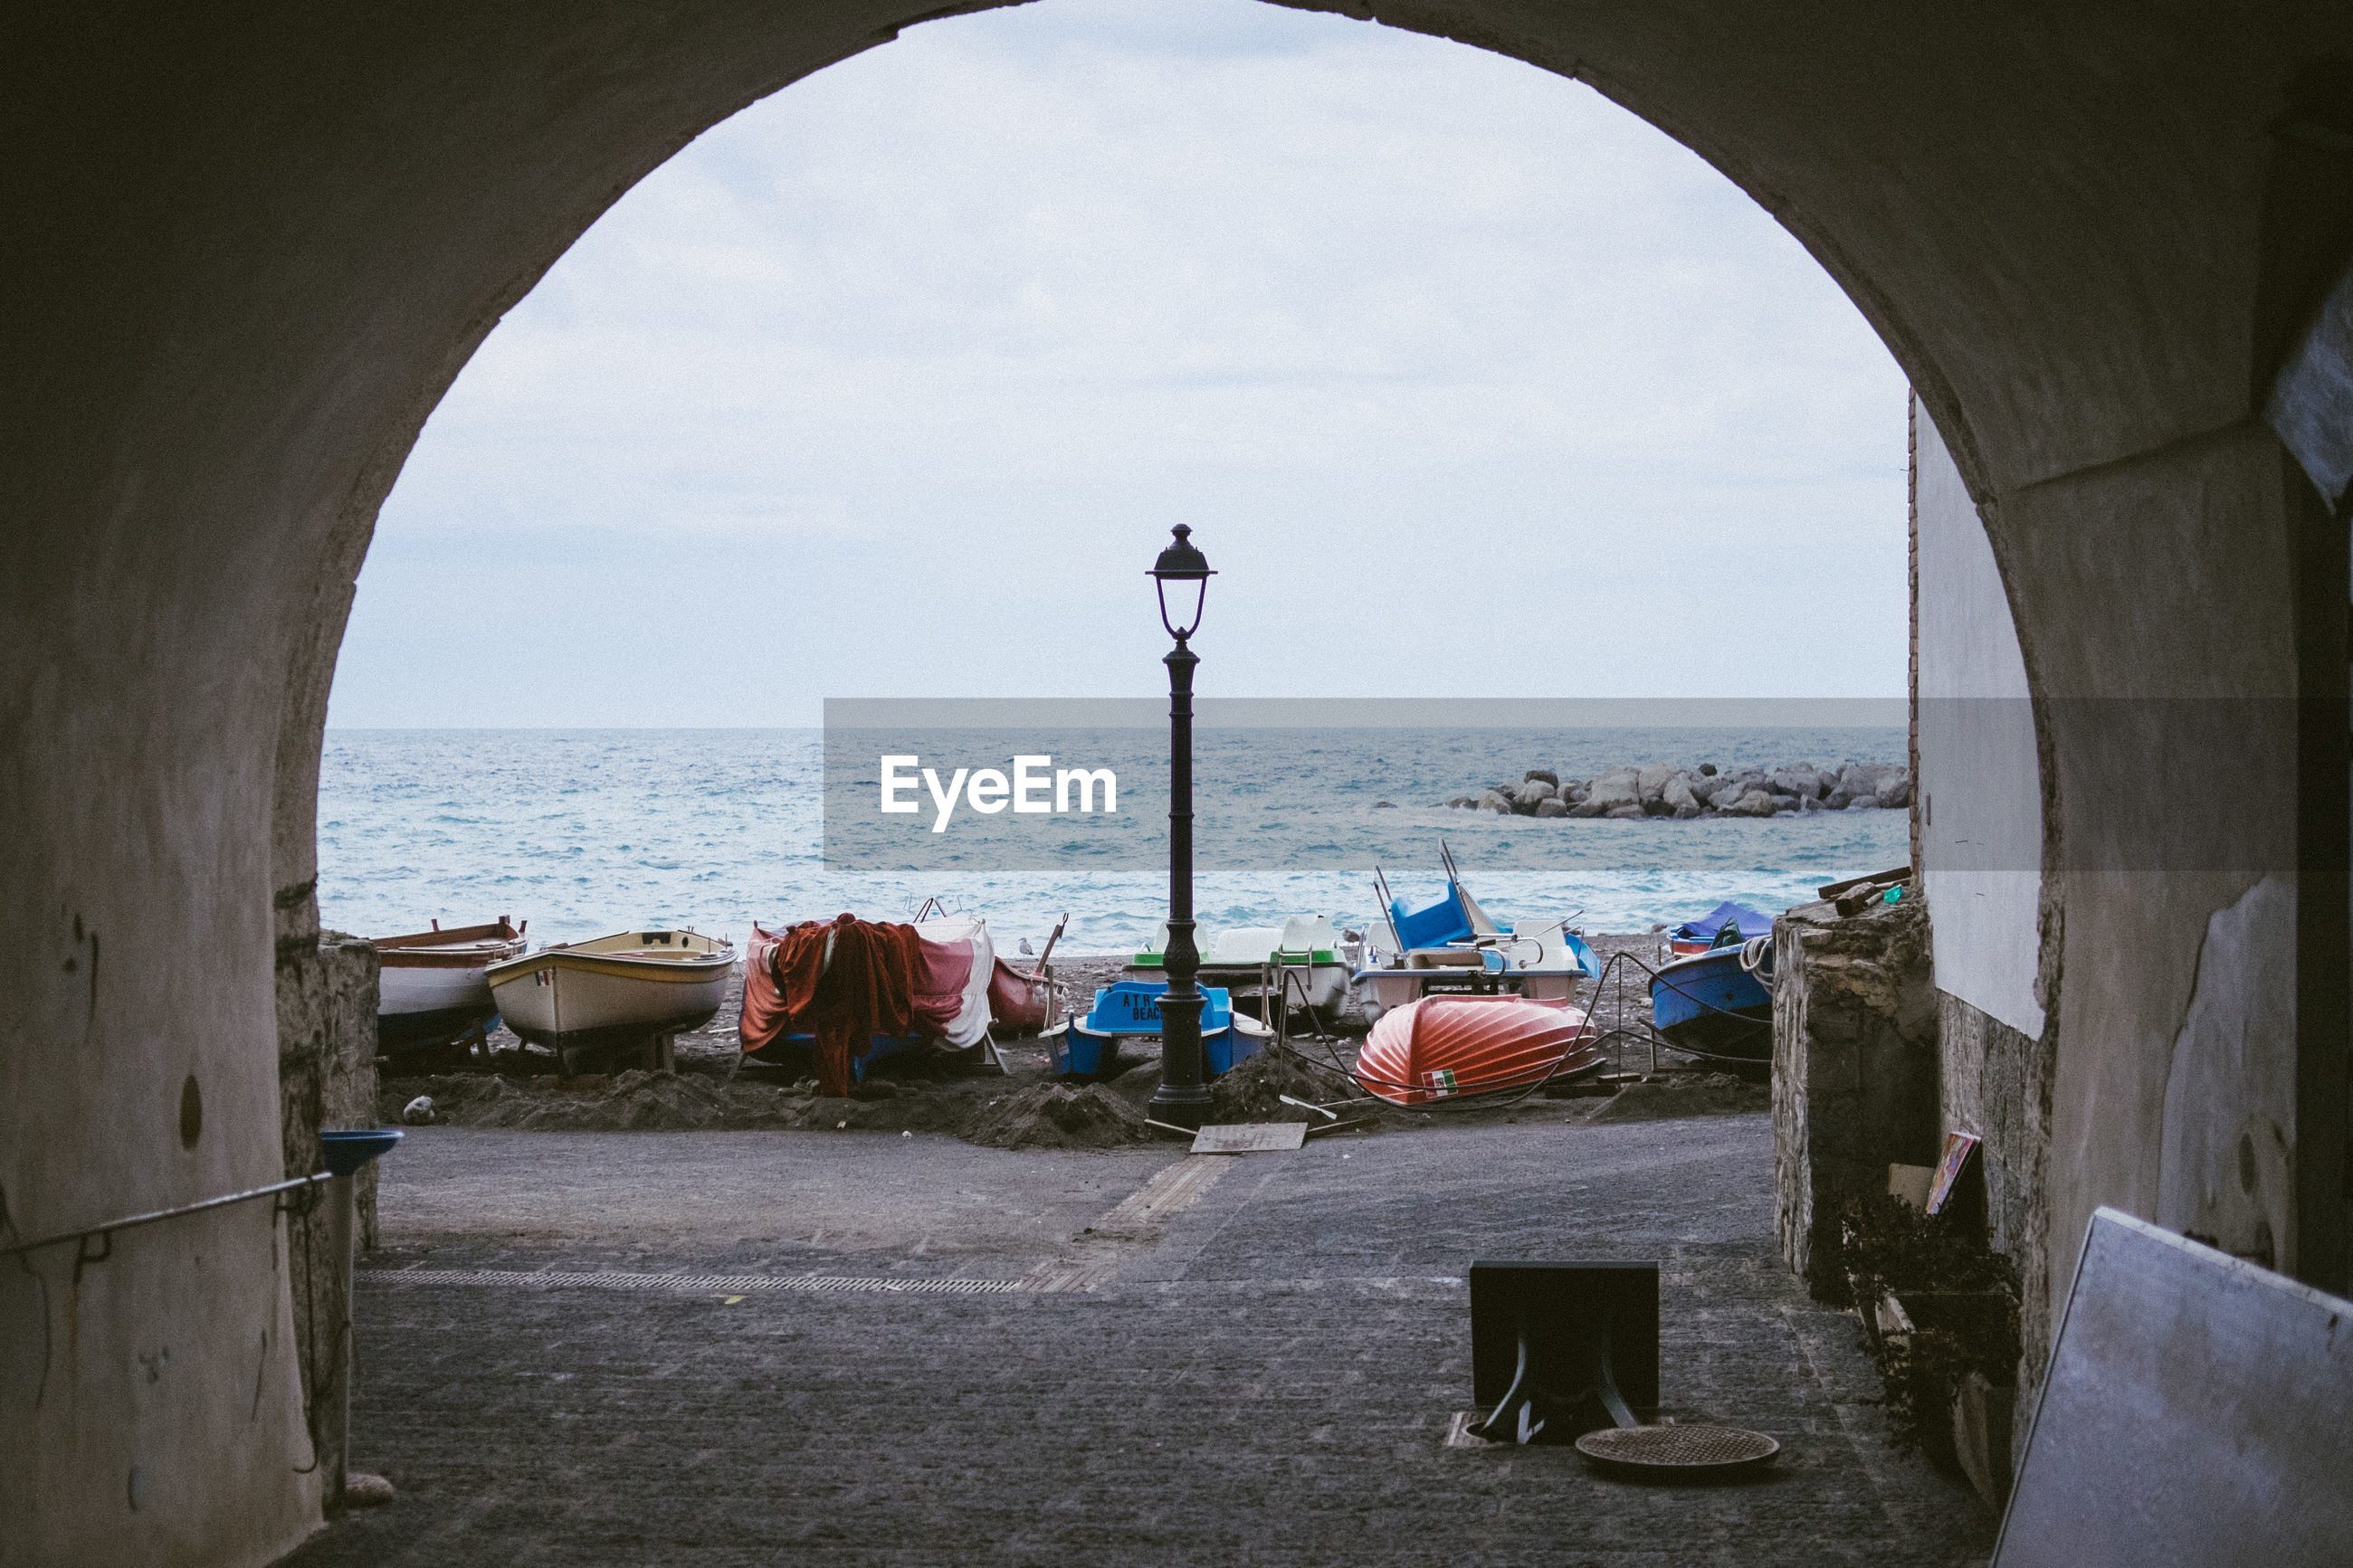 SCENIC VIEW OF SEA AGAINST SKY SEEN THROUGH ARCHWAY